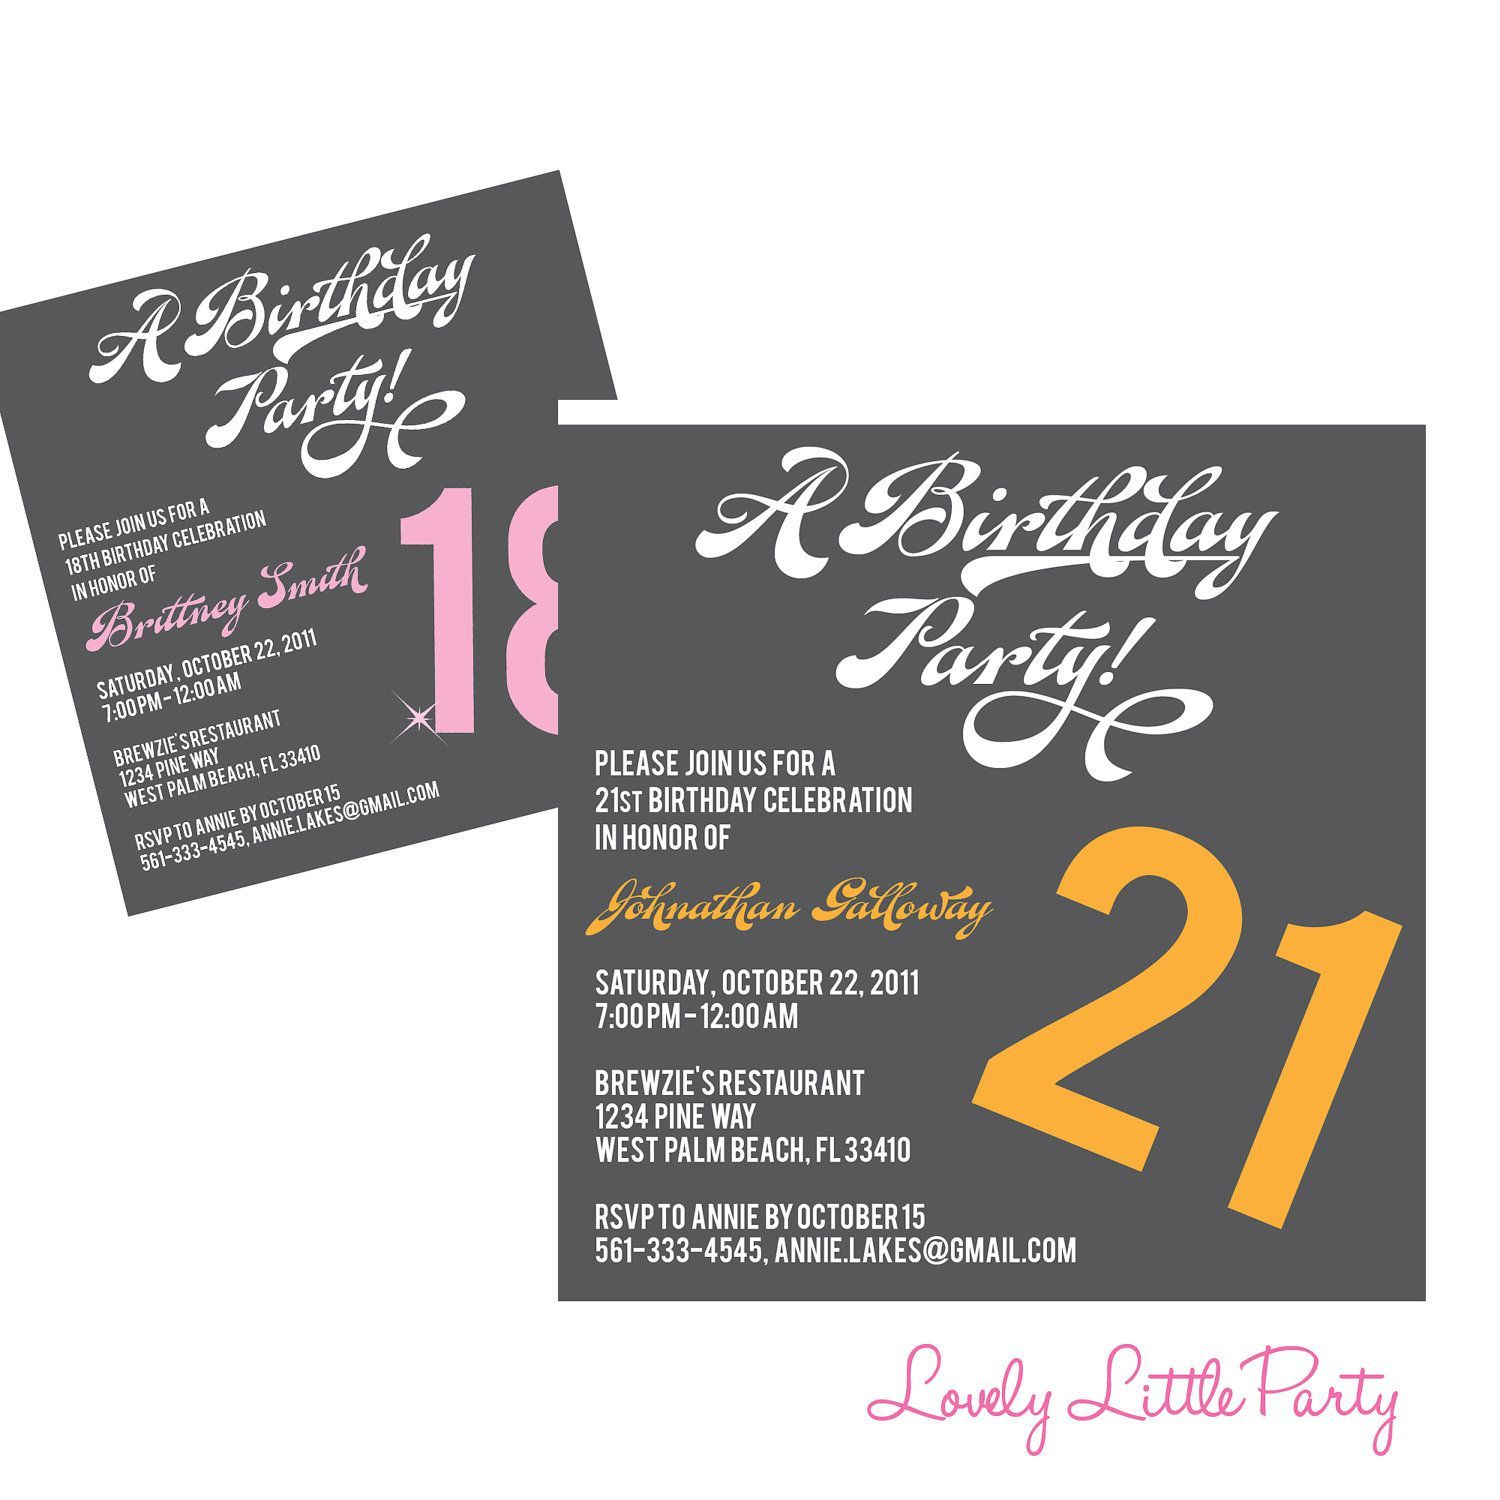 Birthday Party Invitation Wording – Birthday party should be a fun ...